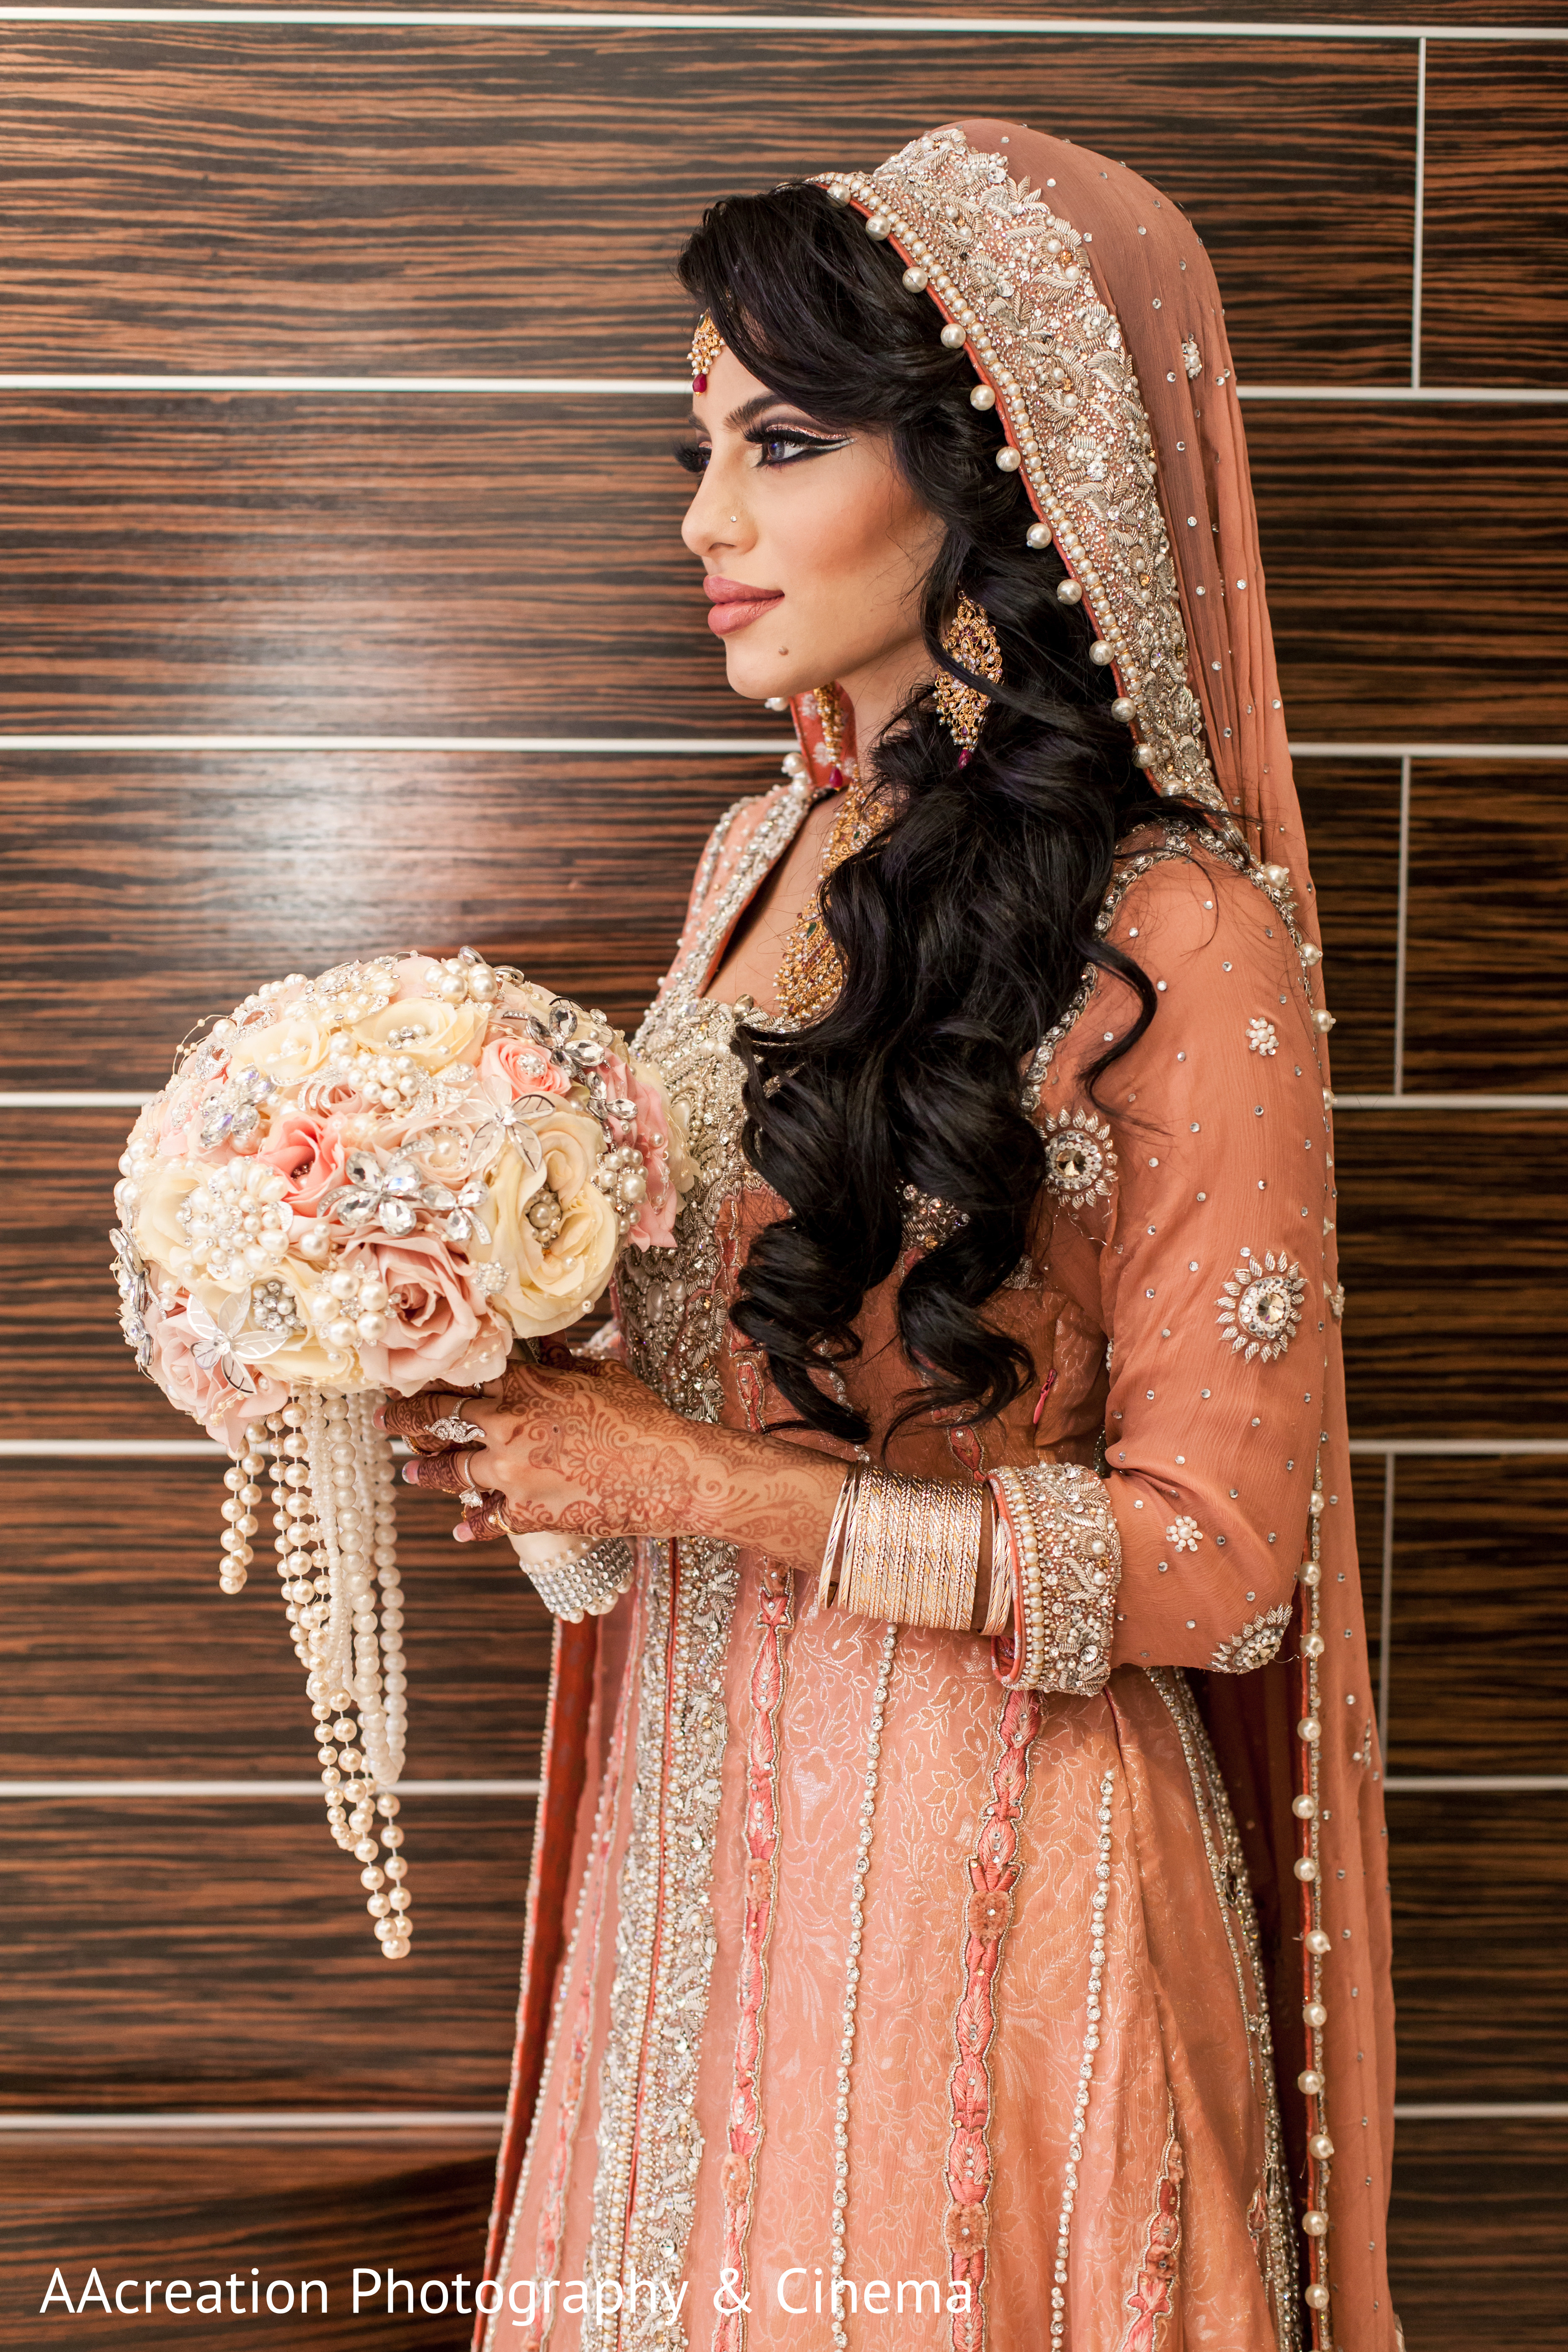 all posts tagged with muslim-wedding | maharani weddings